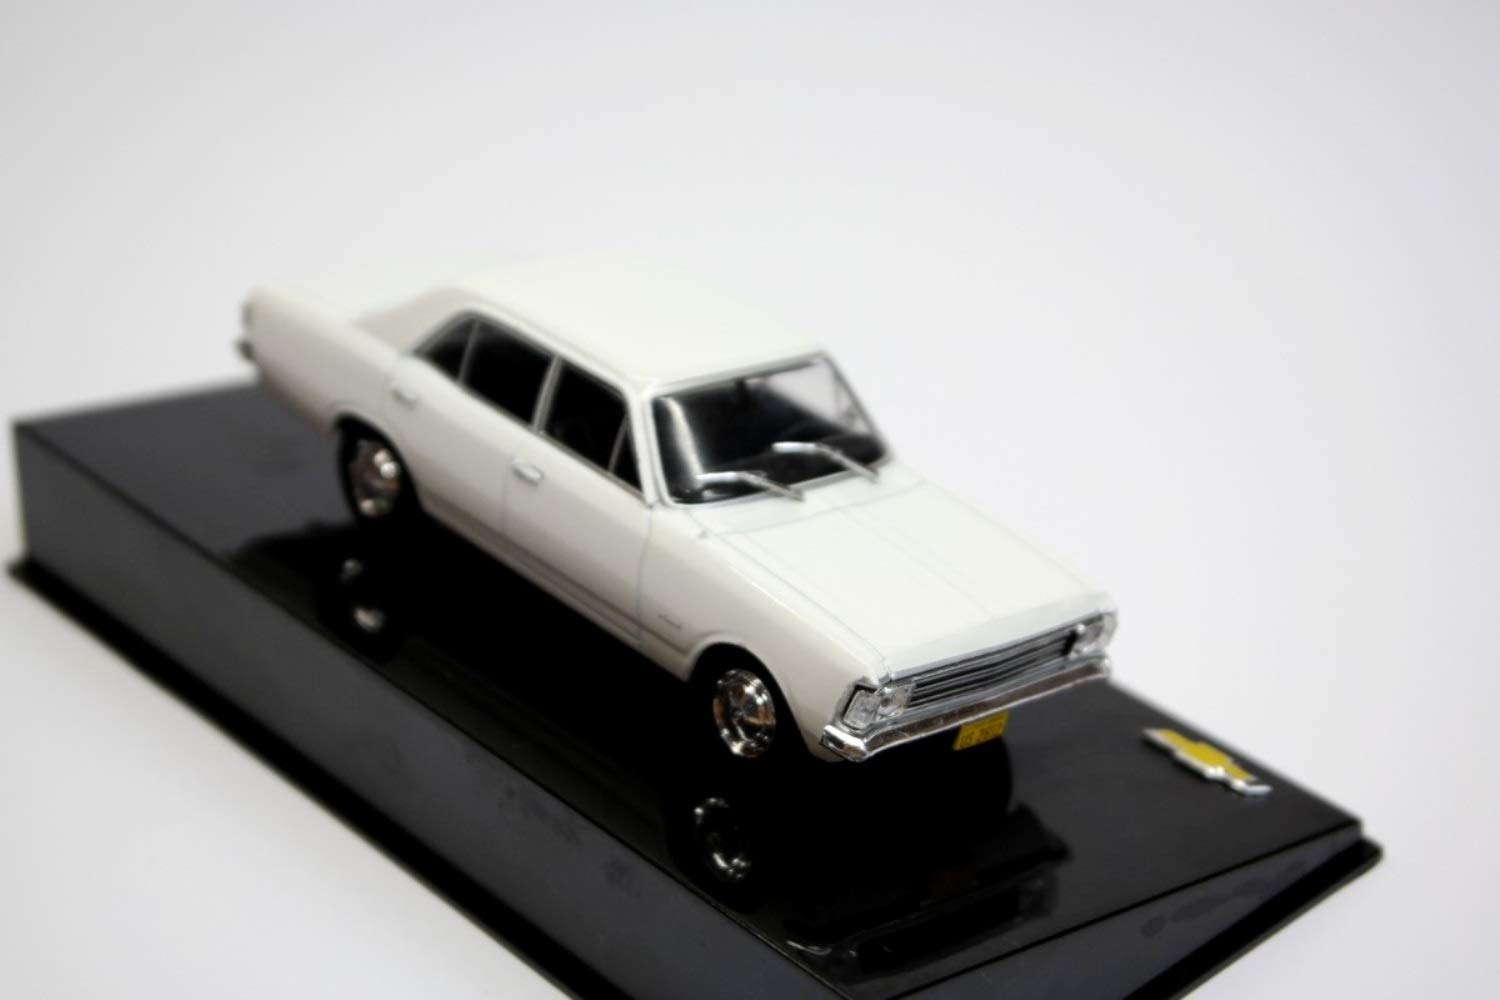 Chevrolet Opala 2500 1970 Year - Executive Car - 1/43 Scale Collectible Model Vehicle - Chevrolet Collection #21 by 1/43 AZEBUY - SEDANS